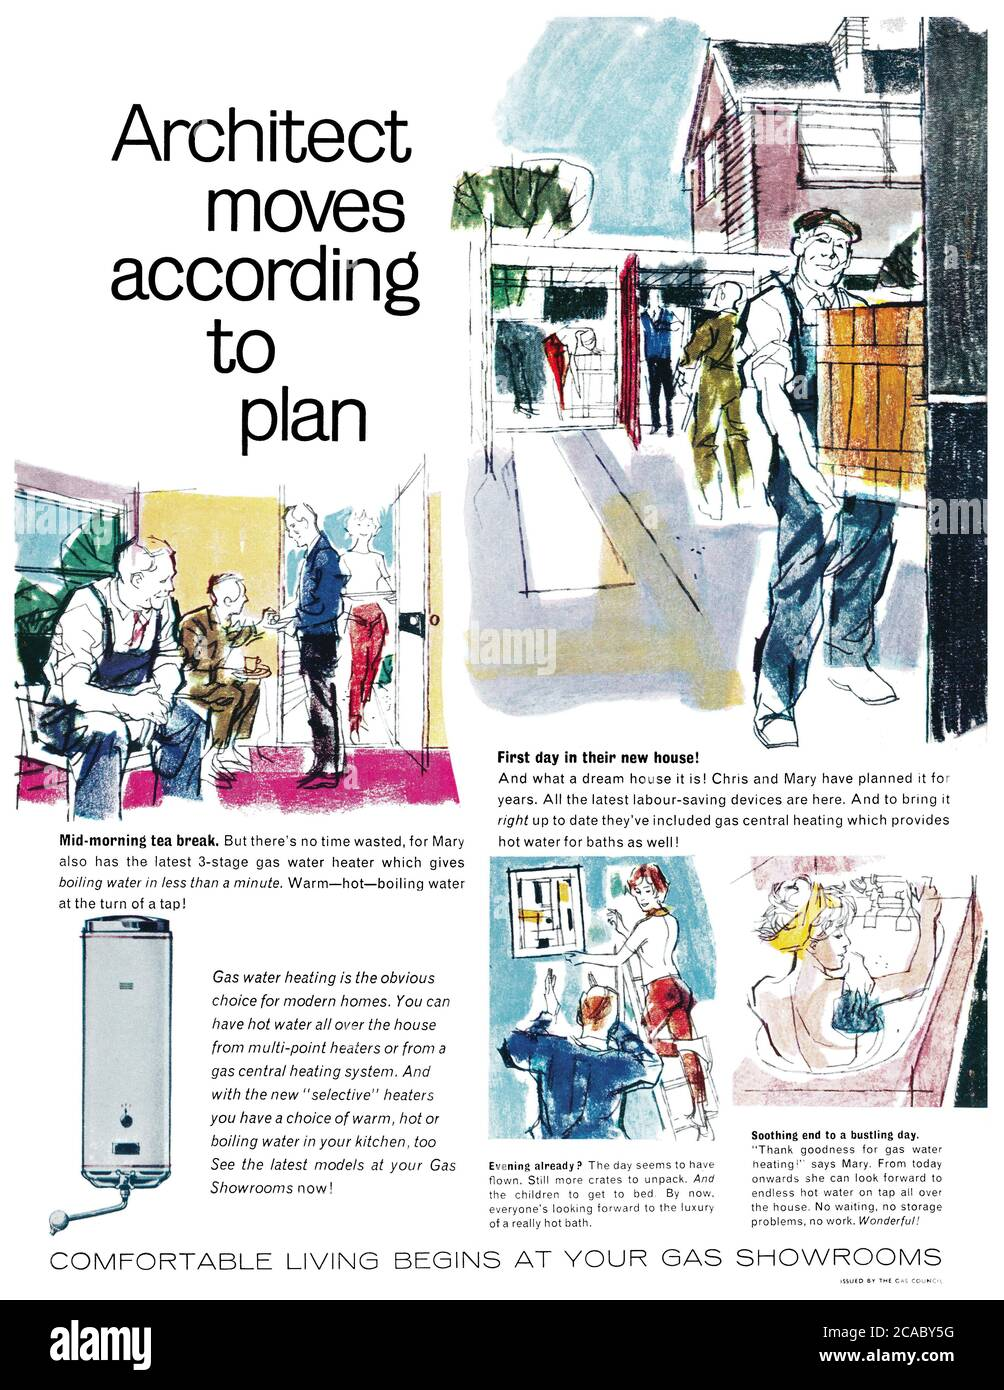 1961 British advertisement for gas water heating issued by the Gas Council. Stock Photo